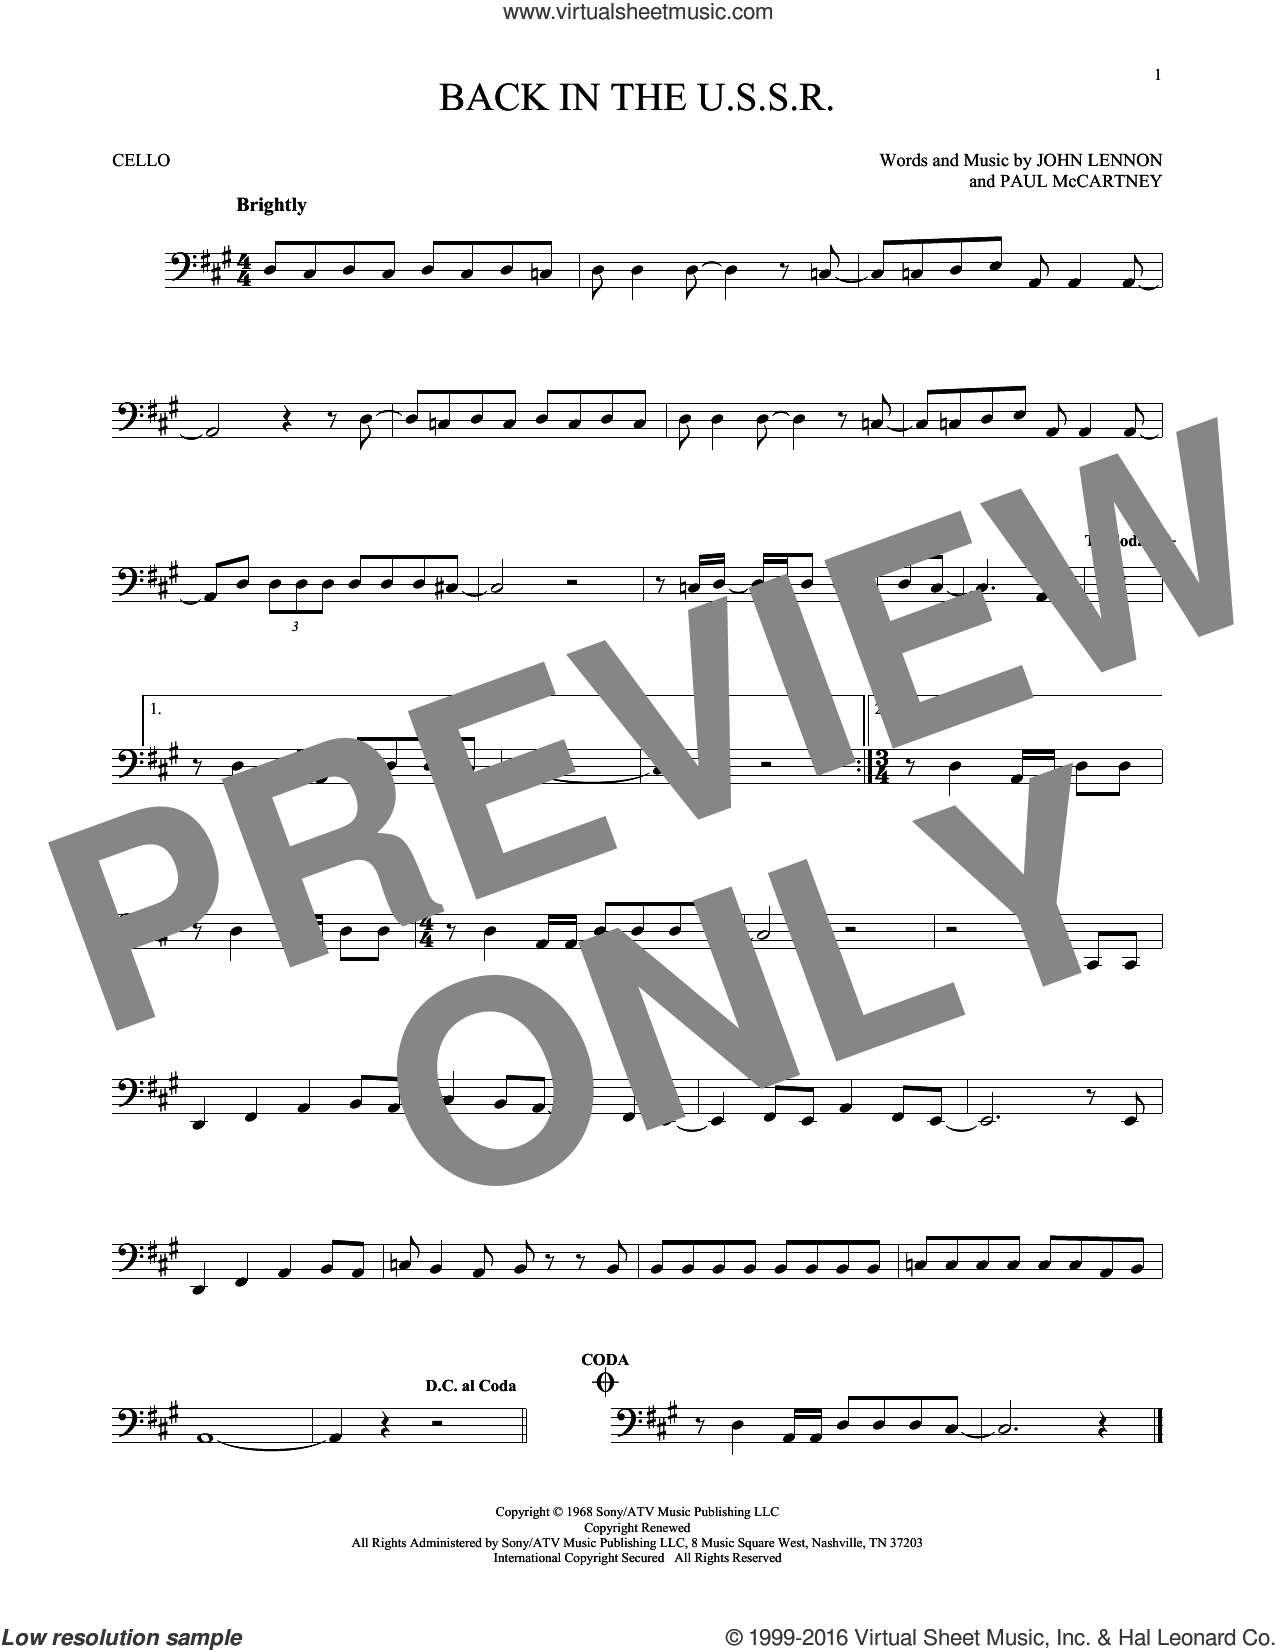 Back In The U.S.S.R. sheet music for cello solo by The Beatles, Chubby Checker, John Lennon and Paul McCartney. Score Image Preview.